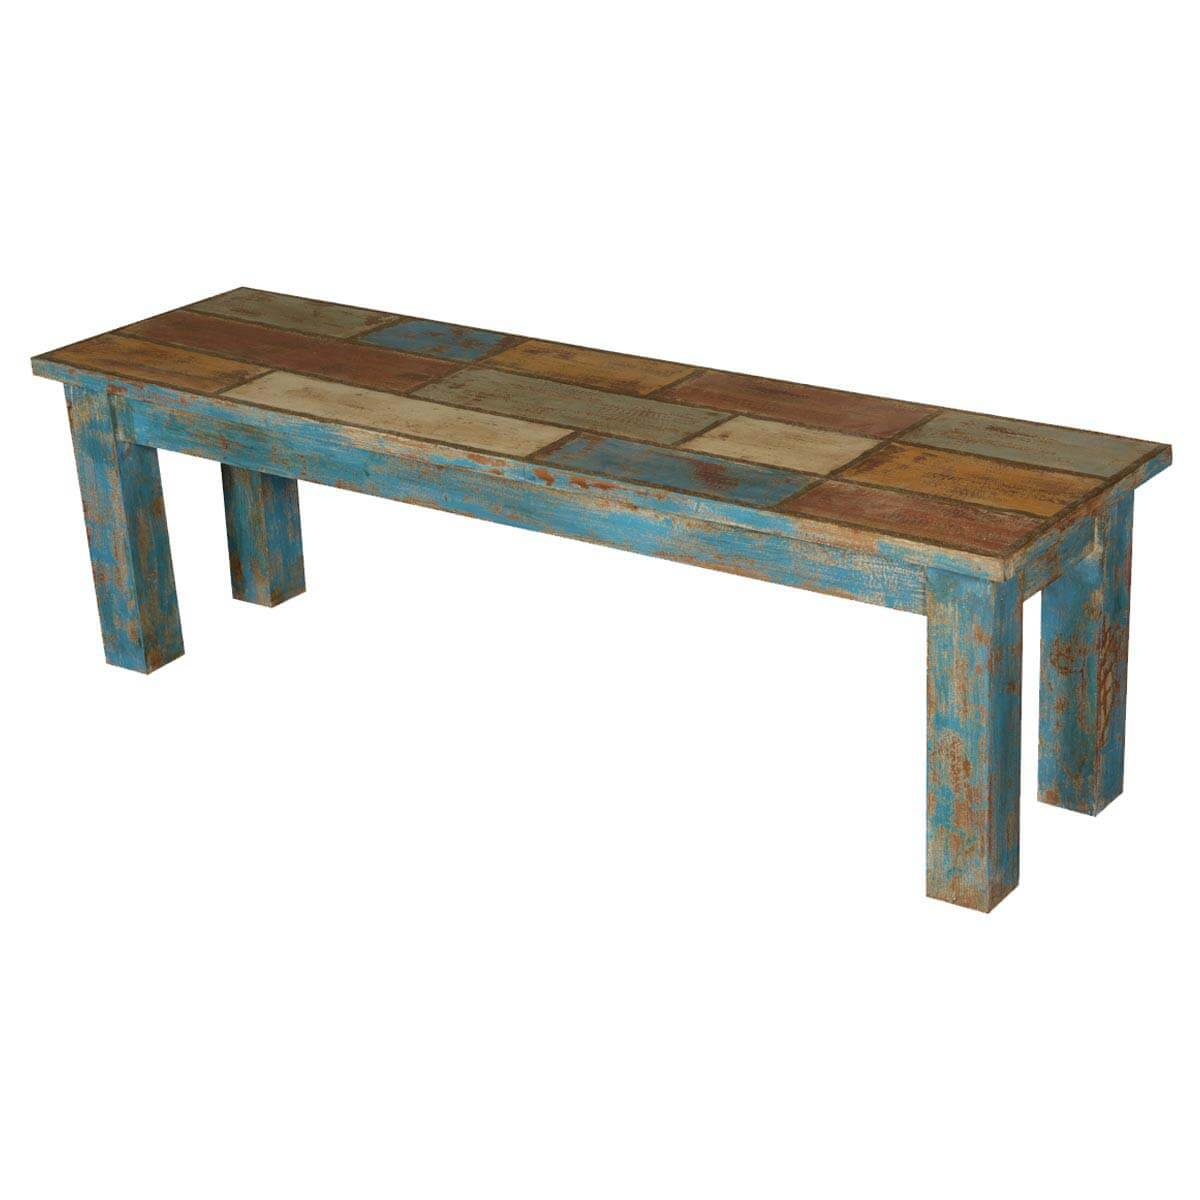 Wooden Bench Table Francis Wooden Patches Distressed Acacia Wood Bench